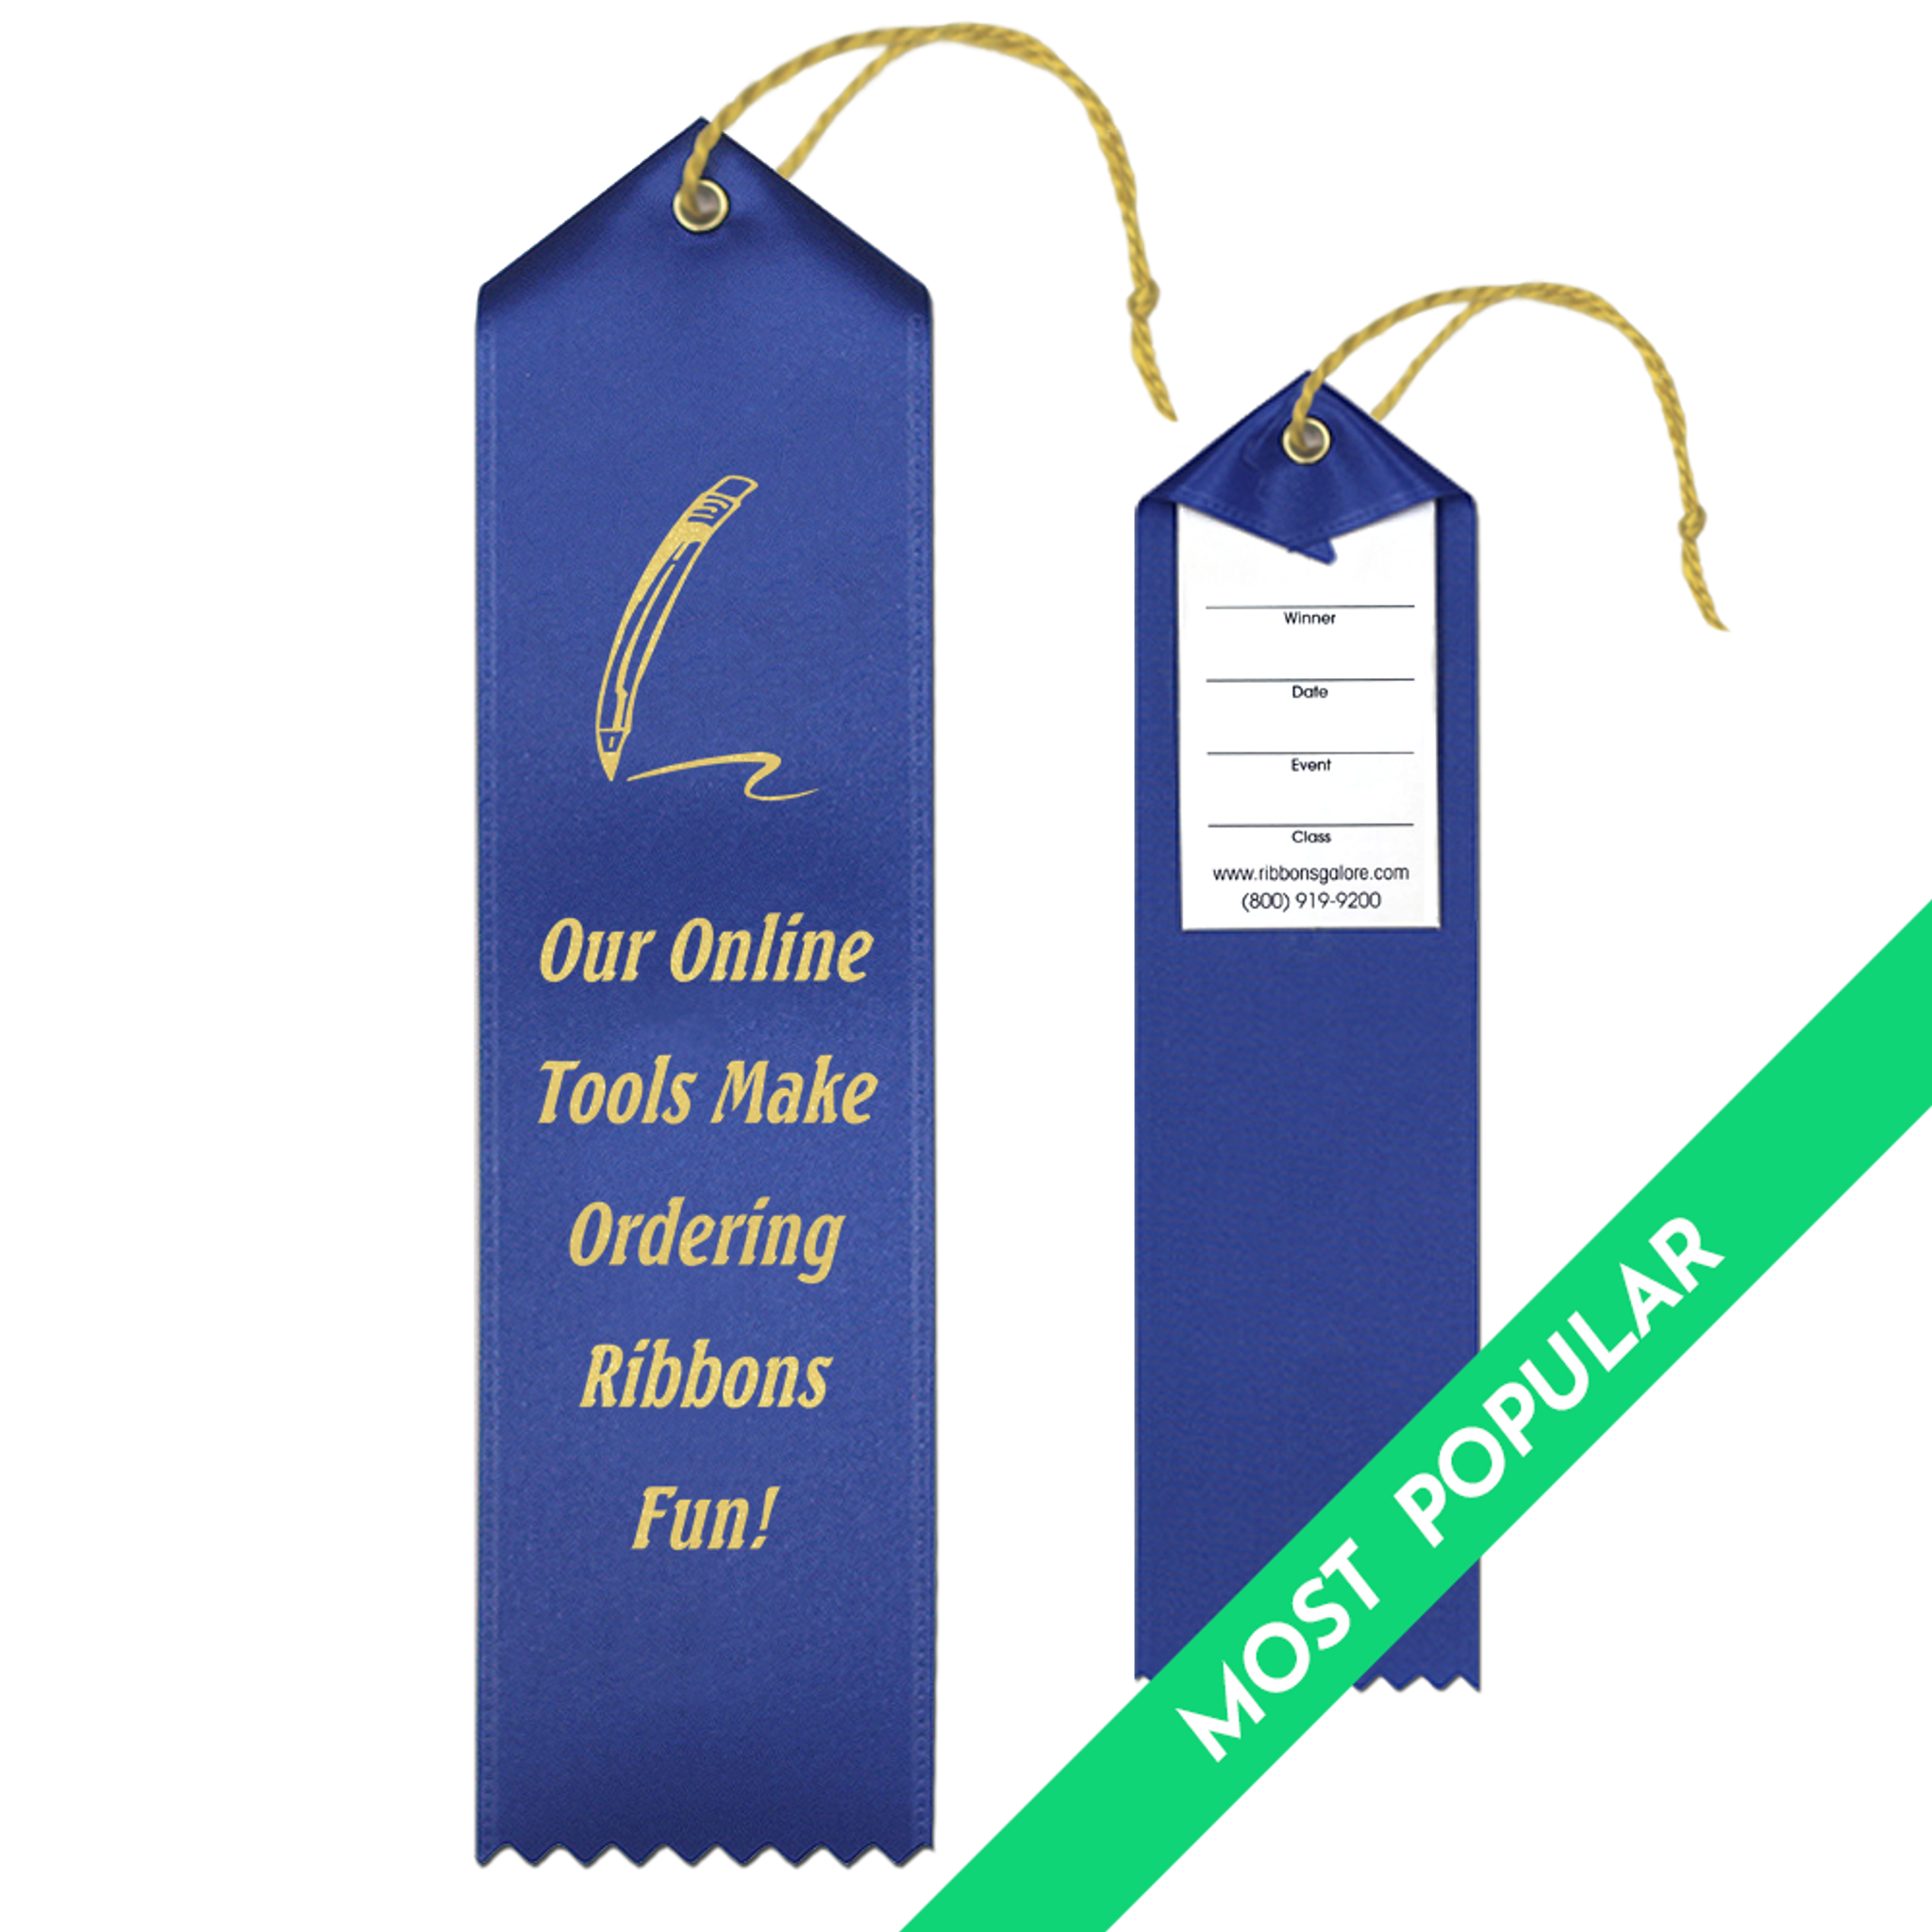 Custom Award Ribbon 2x8 Peaked with Event Card and String